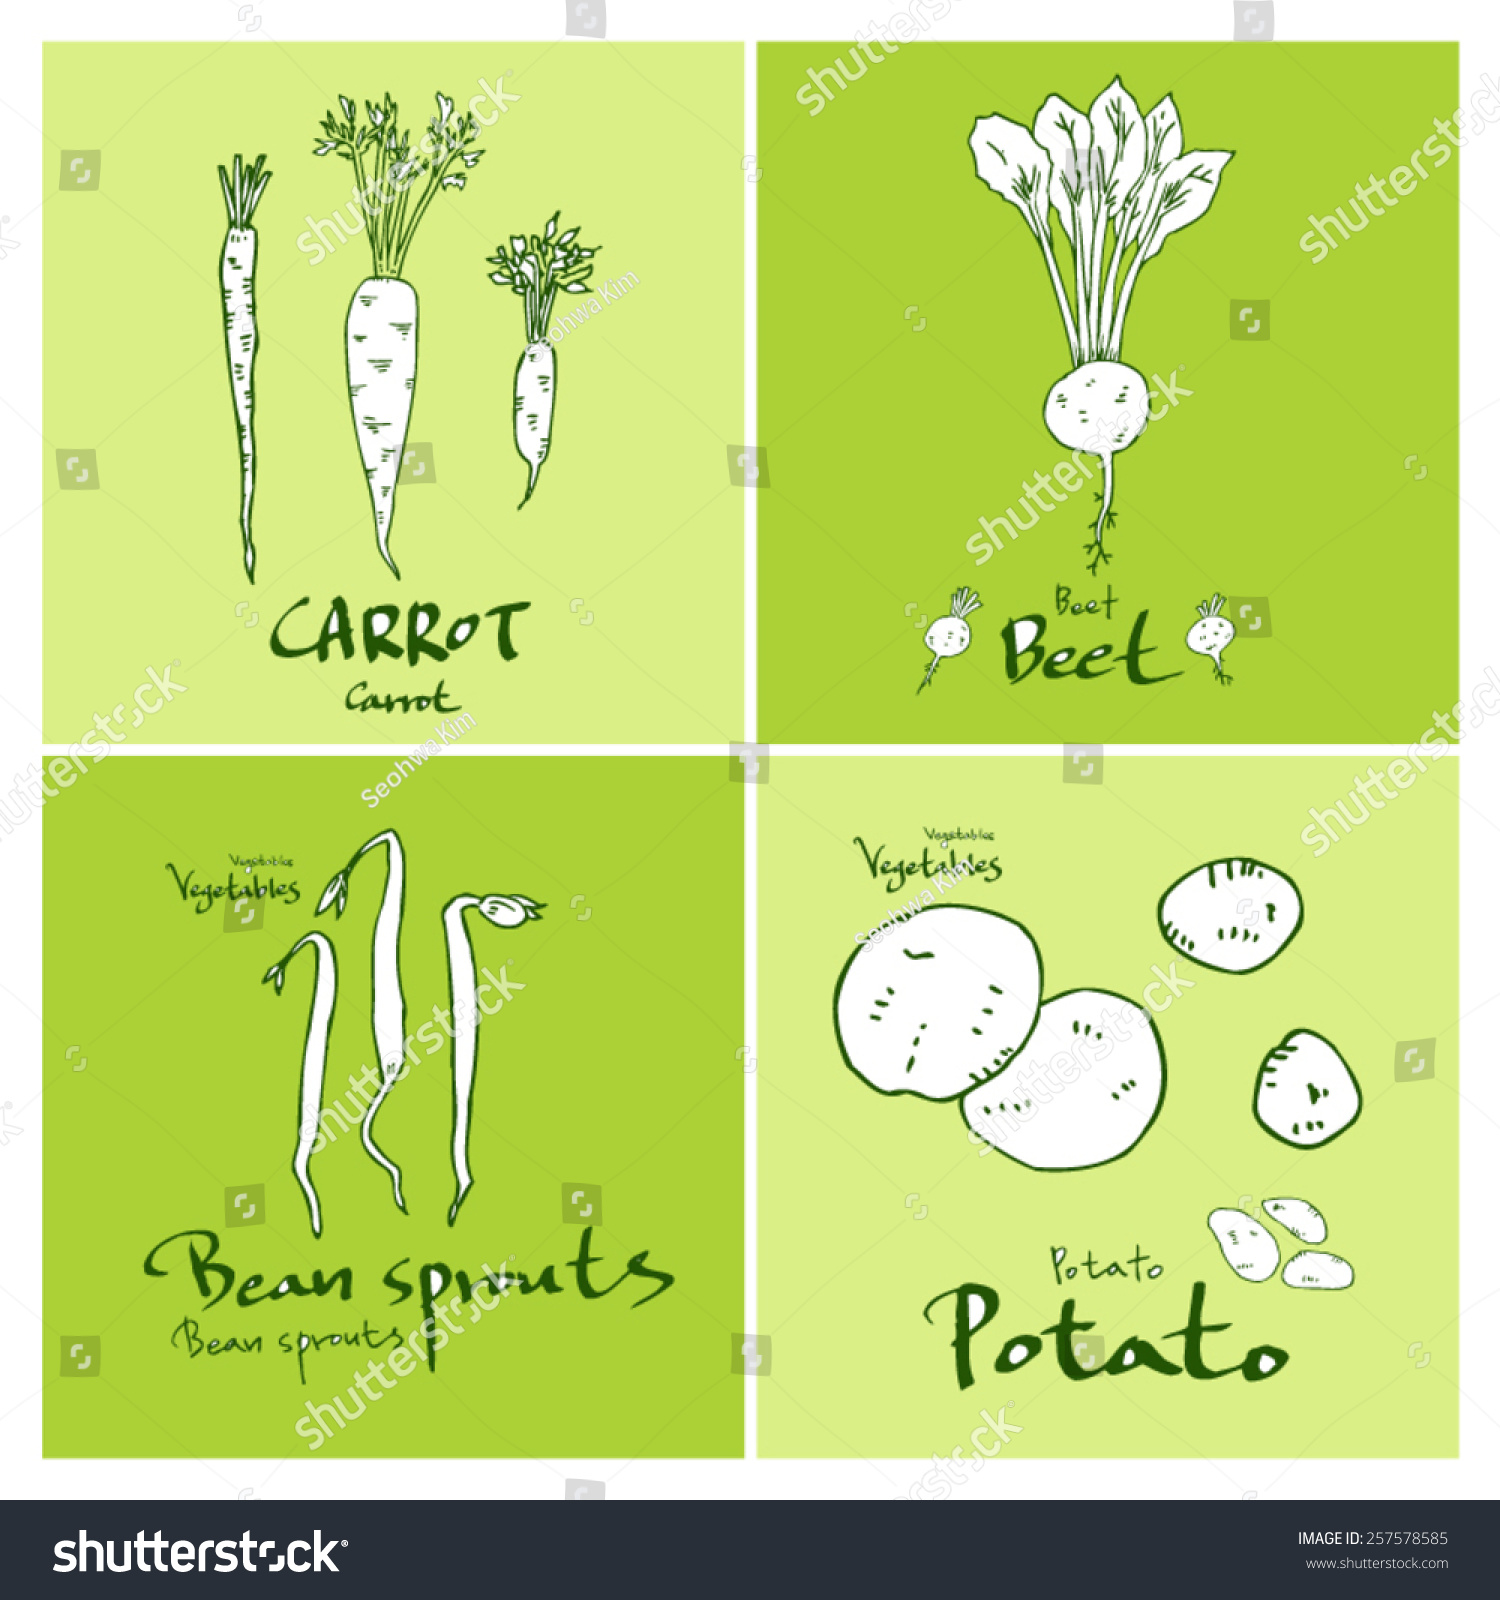 Vegetable and fruit illustrations Hand drawn food ingredients vector